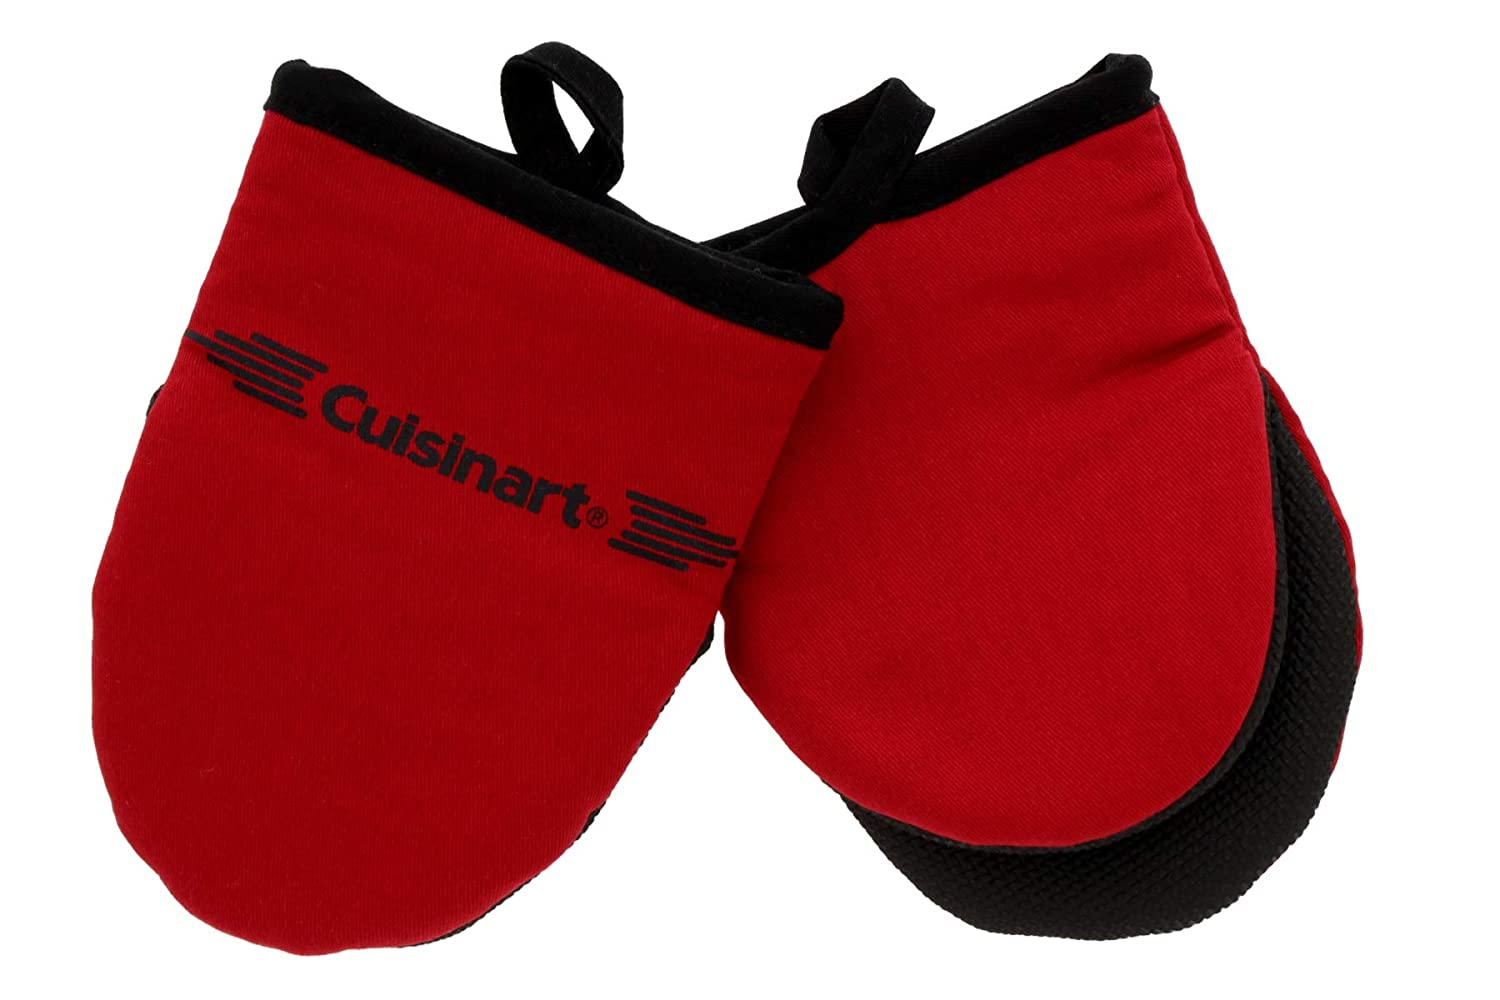 Cuisinart Neoprene Mini Oven Mitts, 2pk - Non-Slip Heat Resistant Gloves Protect Hands and Surfaces from Hot Cookware, Kitchenware Items - Ideal Mini Kitchen Set with Hanging Loop - Red with Black